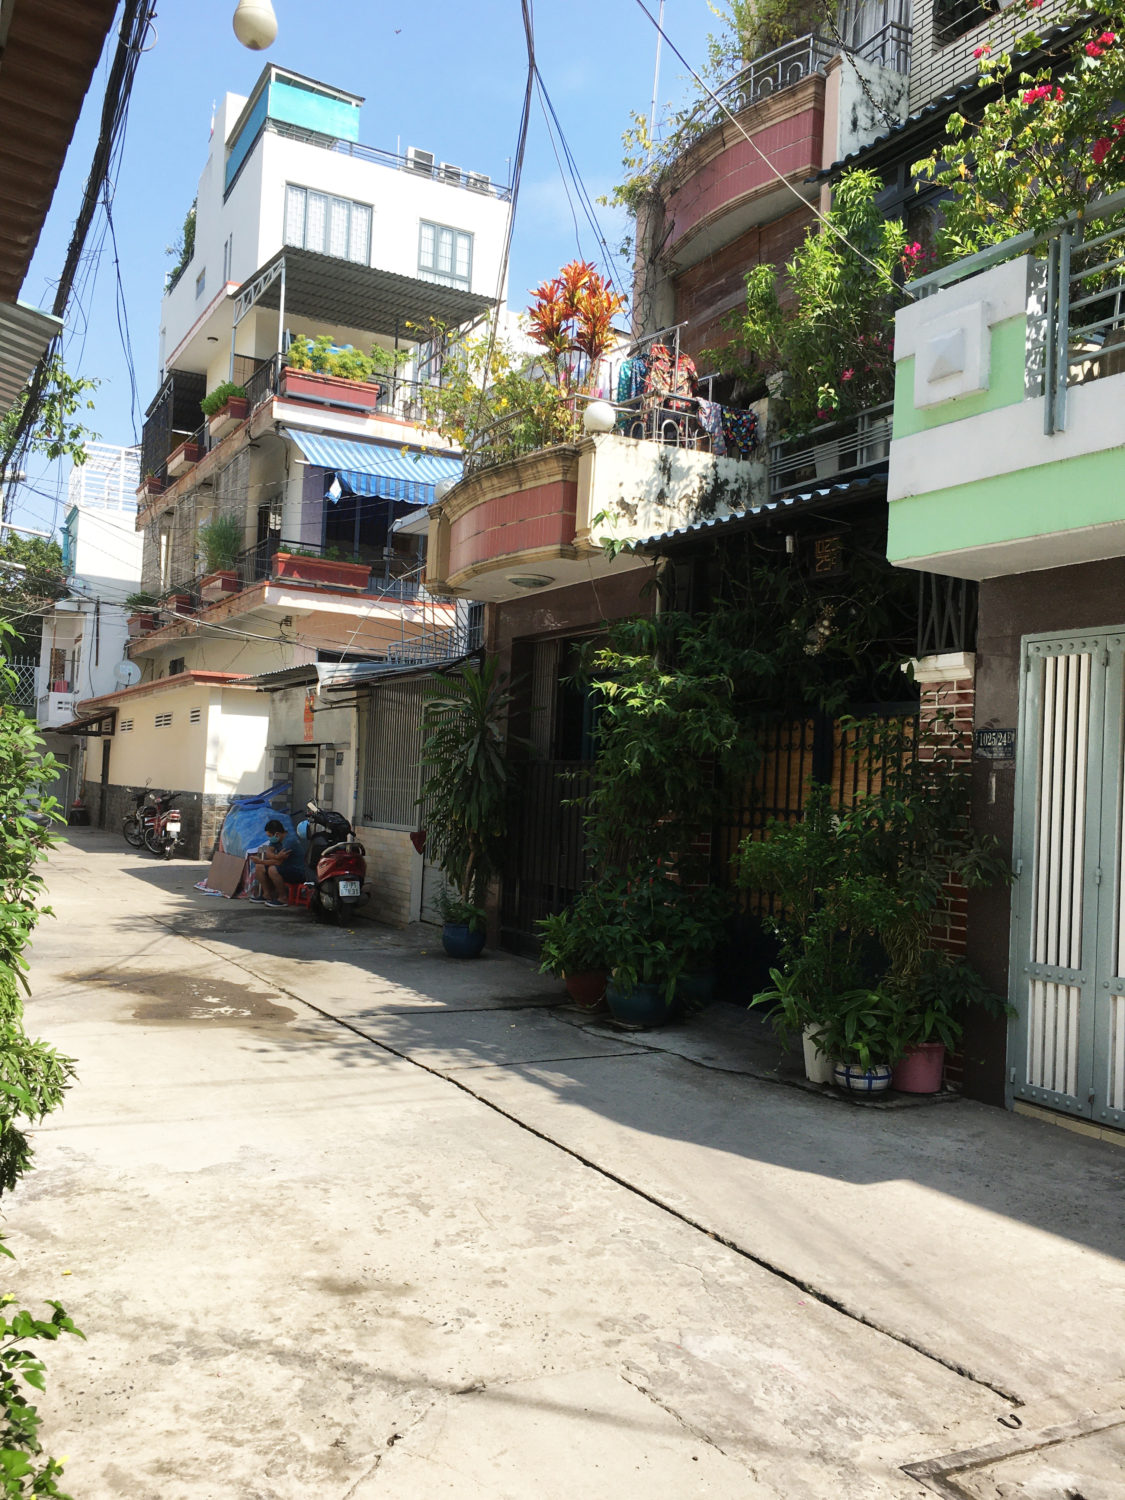 Tan-Binh-District-Ward-7-Ho-Chi-Minh-City-typical-middle-to-low-income-residential-district-during-coronavirus-lockdown-042320-by-©Le-Thi-Xuan-Ninh, Viet Nam vs. COVID-19: How one small nation defeated a global enemy, World News & Views